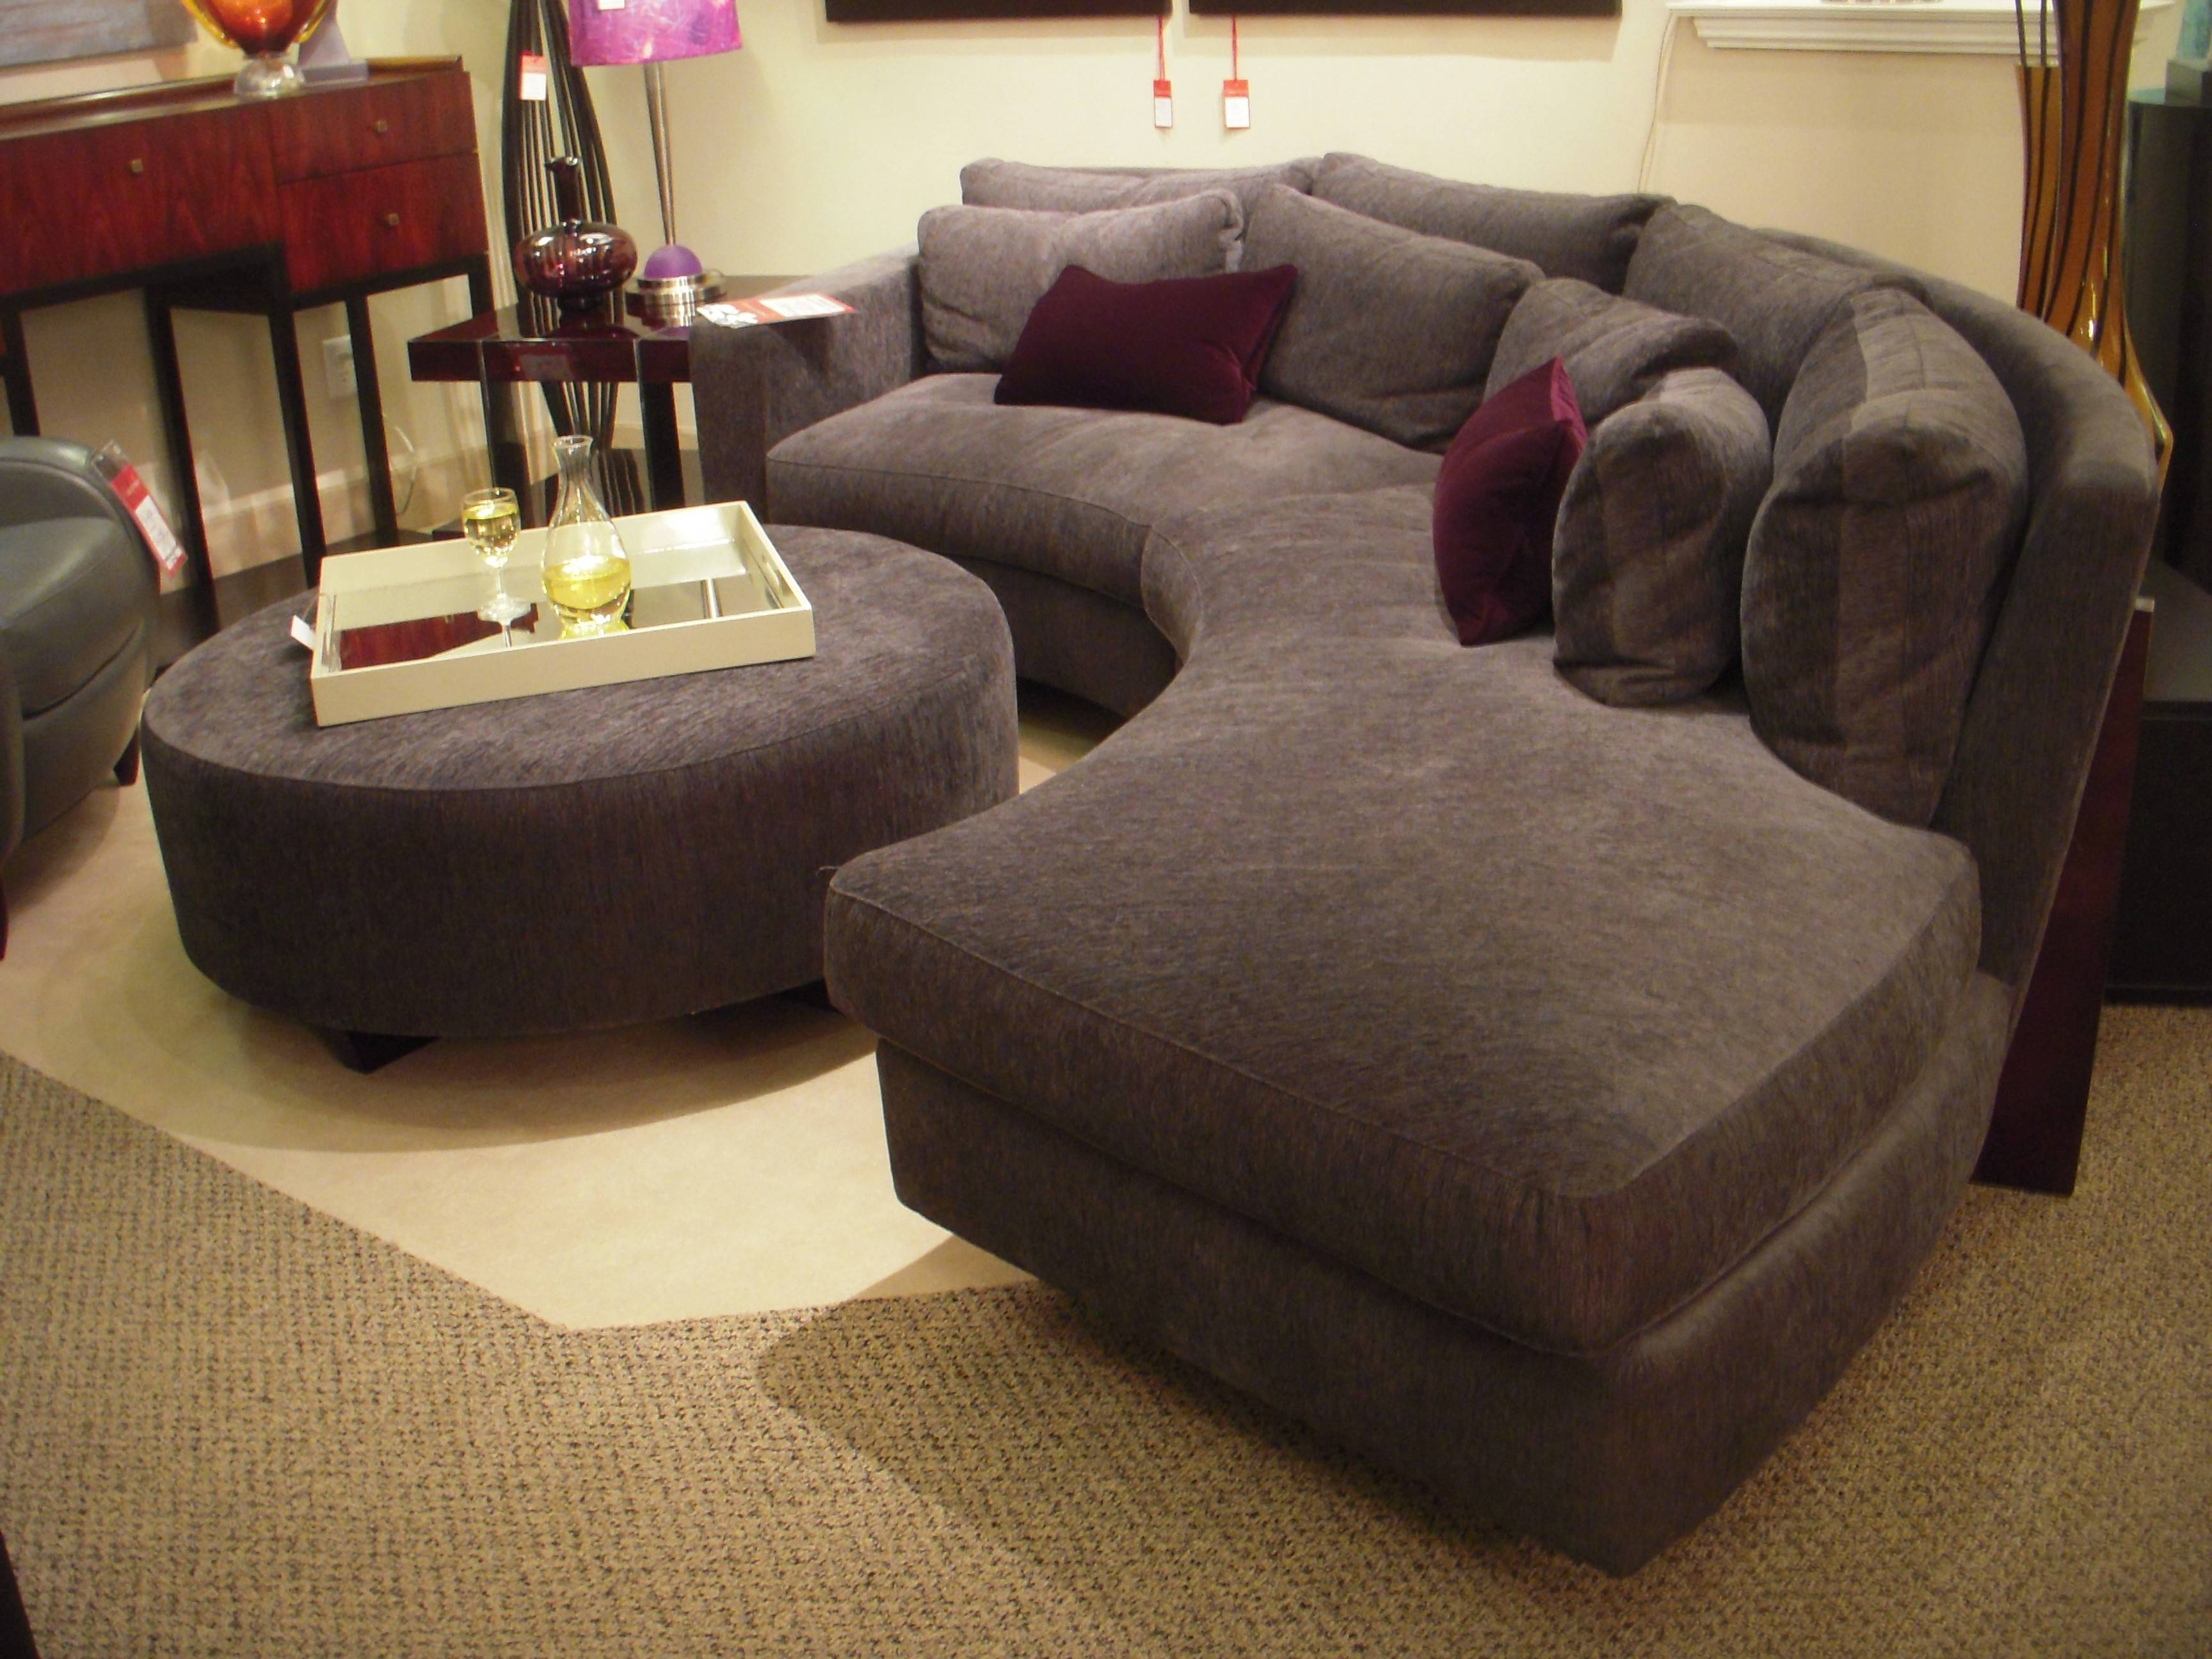 Sofas Center : Discount Sectional Sofas Couches American Freight within Discounted Sectional Sofa (Image 30 of 30)